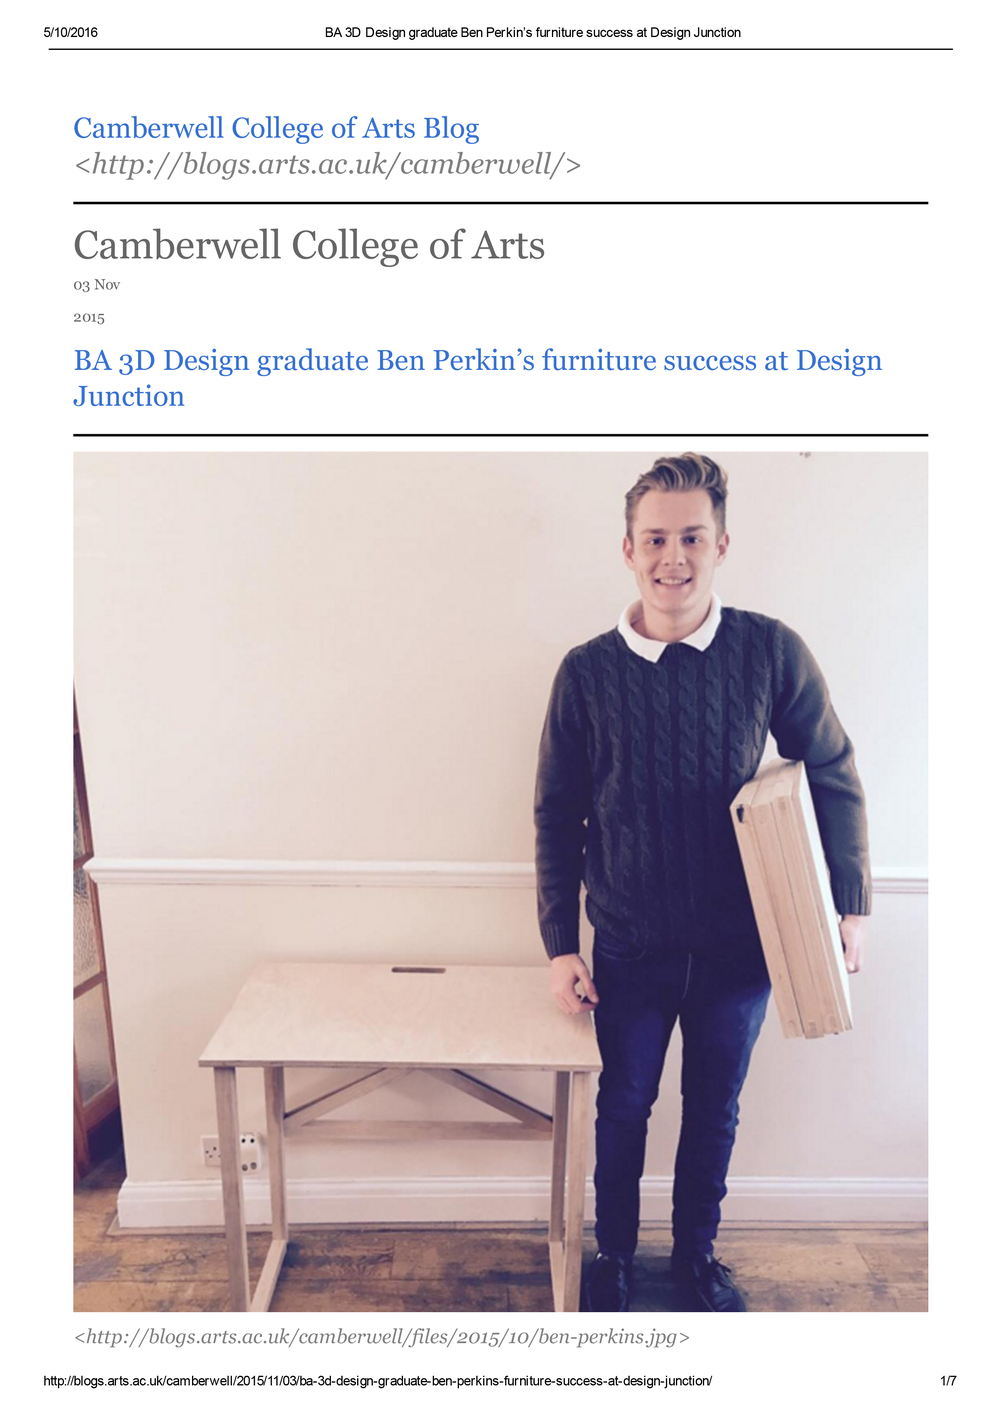 BA 3D Design graduate Ben Perkin's furniture success at Design Junction-1.jpg